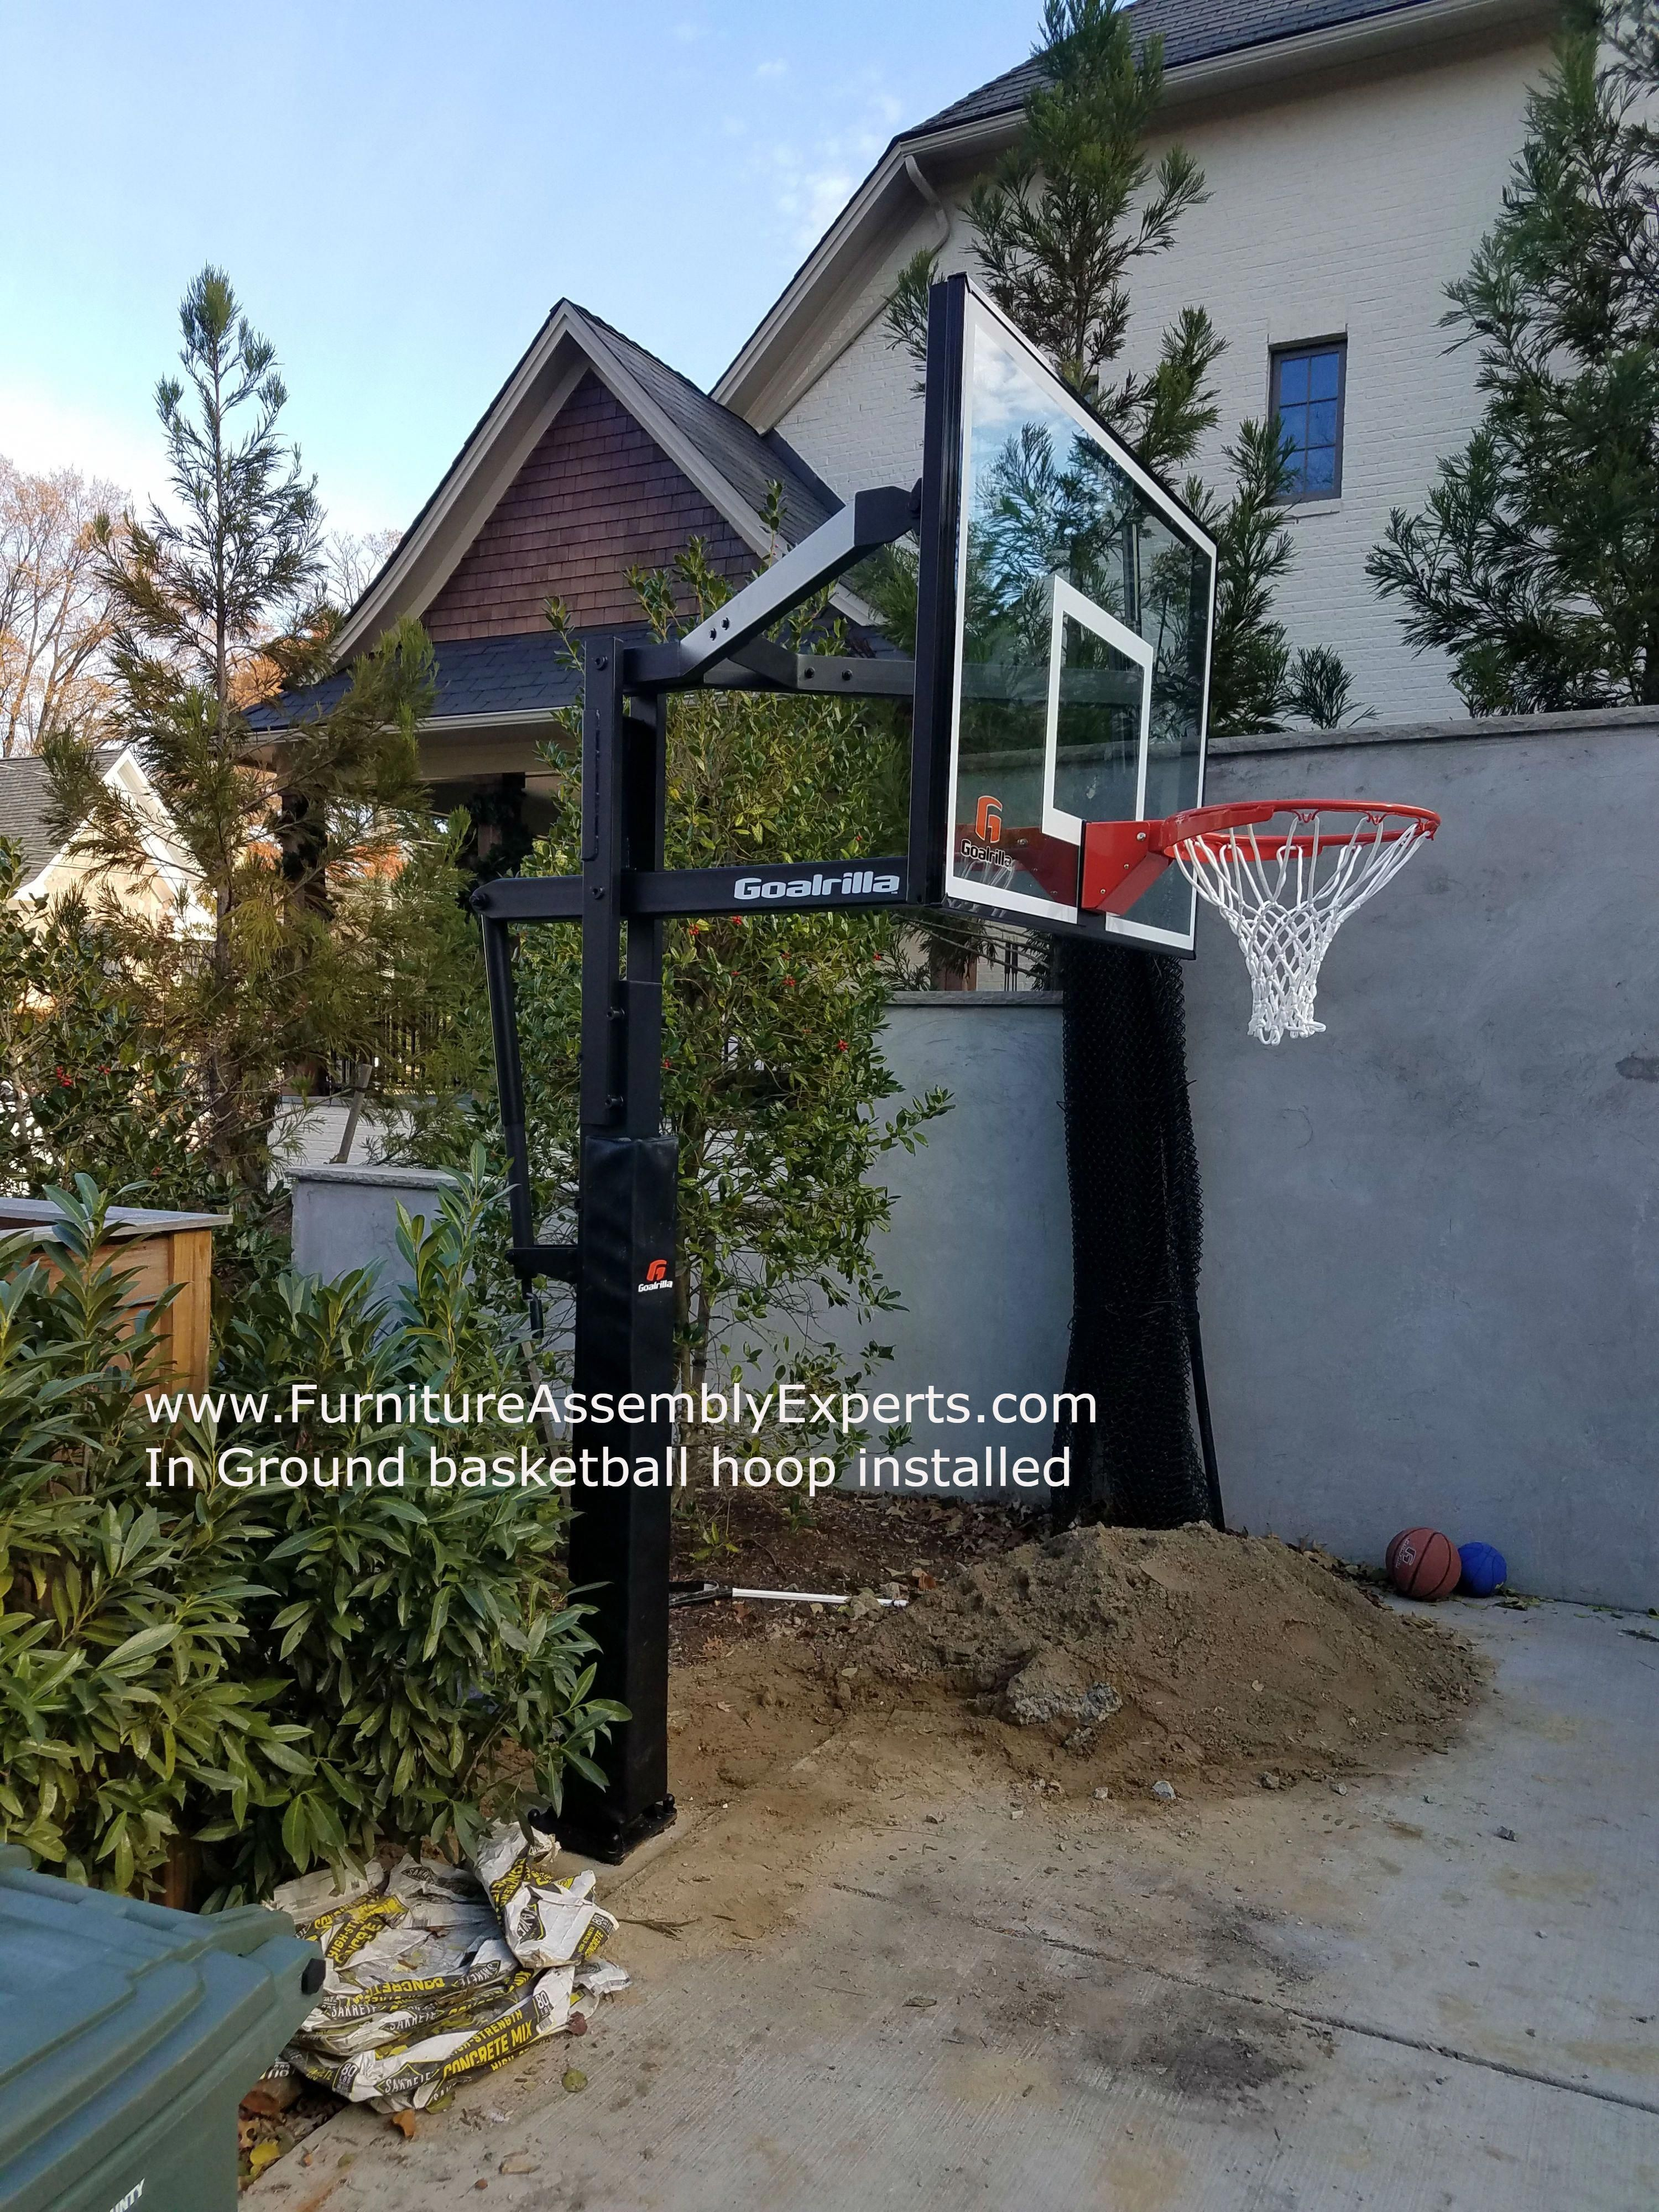 In Ground Portable Basketball Hoop Installation Completed In Baltimore Maryland We Service Washing Portable Basketball Hoop Installation Basketball Equipment